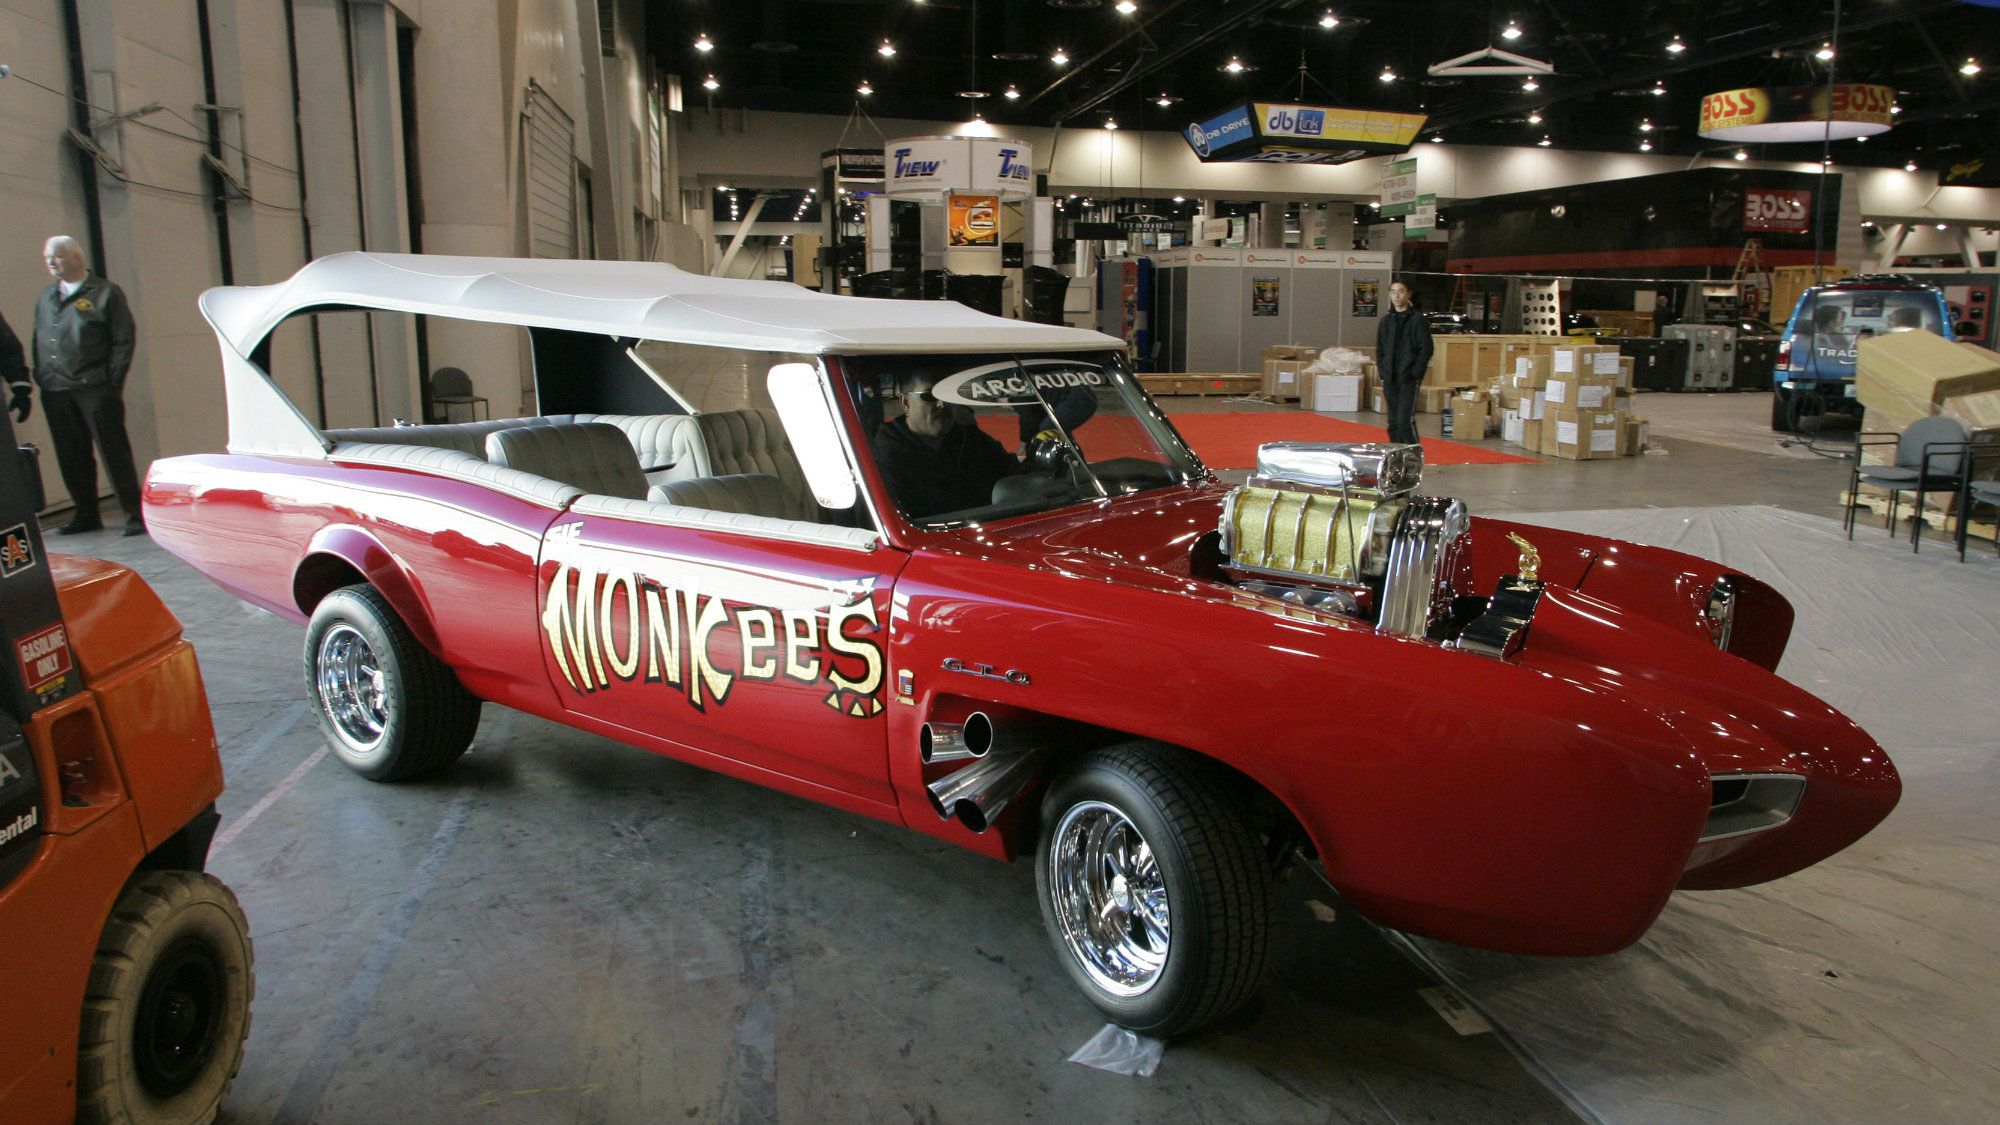 Chris Merrill drives the Monkee-mobile into the exhibit floor at the Las Vegas Convention Center for the Arc Audio display at the 2007 International CES (Consumer Electronics Show) in Las Vegas, Nevada January 6, 2007. Car designer Dean Jeffries created the Monkee Mobile for the 1960's television sit-com starring The Monkees. This year's show runs from January 8-11 and is expected to draw over 150,000 attendees. REUTERS/Steve Marcus (UNITED STATES)